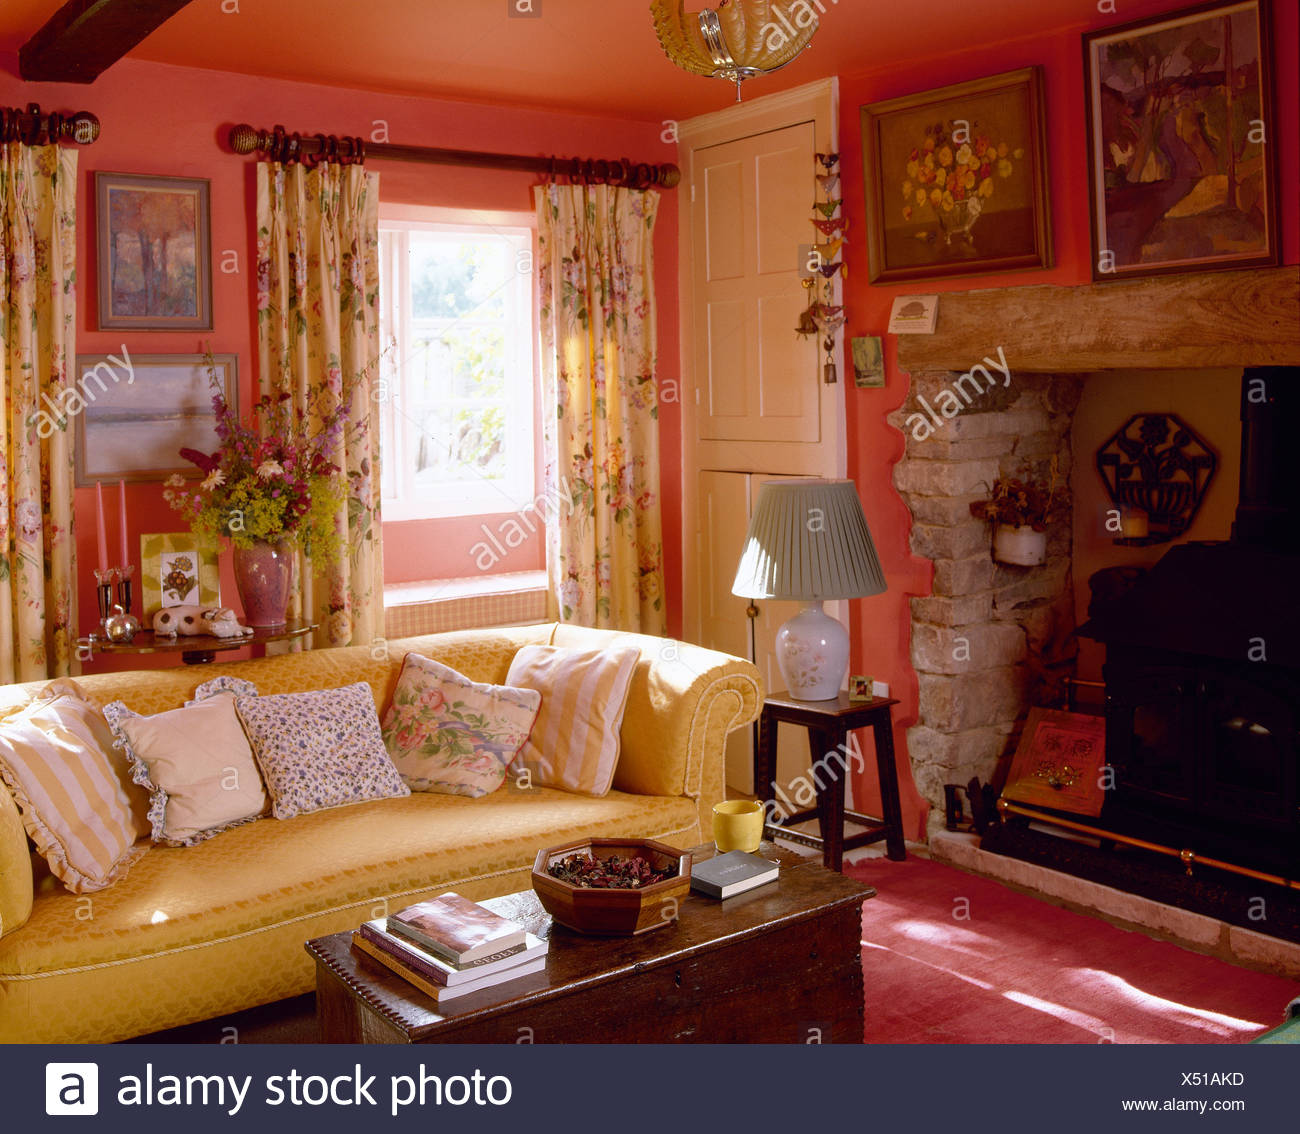 Yellow Sofa With Floral Cushions In Cheerful Red Country Sitting Room With  Inglenook Fireplace And Floral Curtains